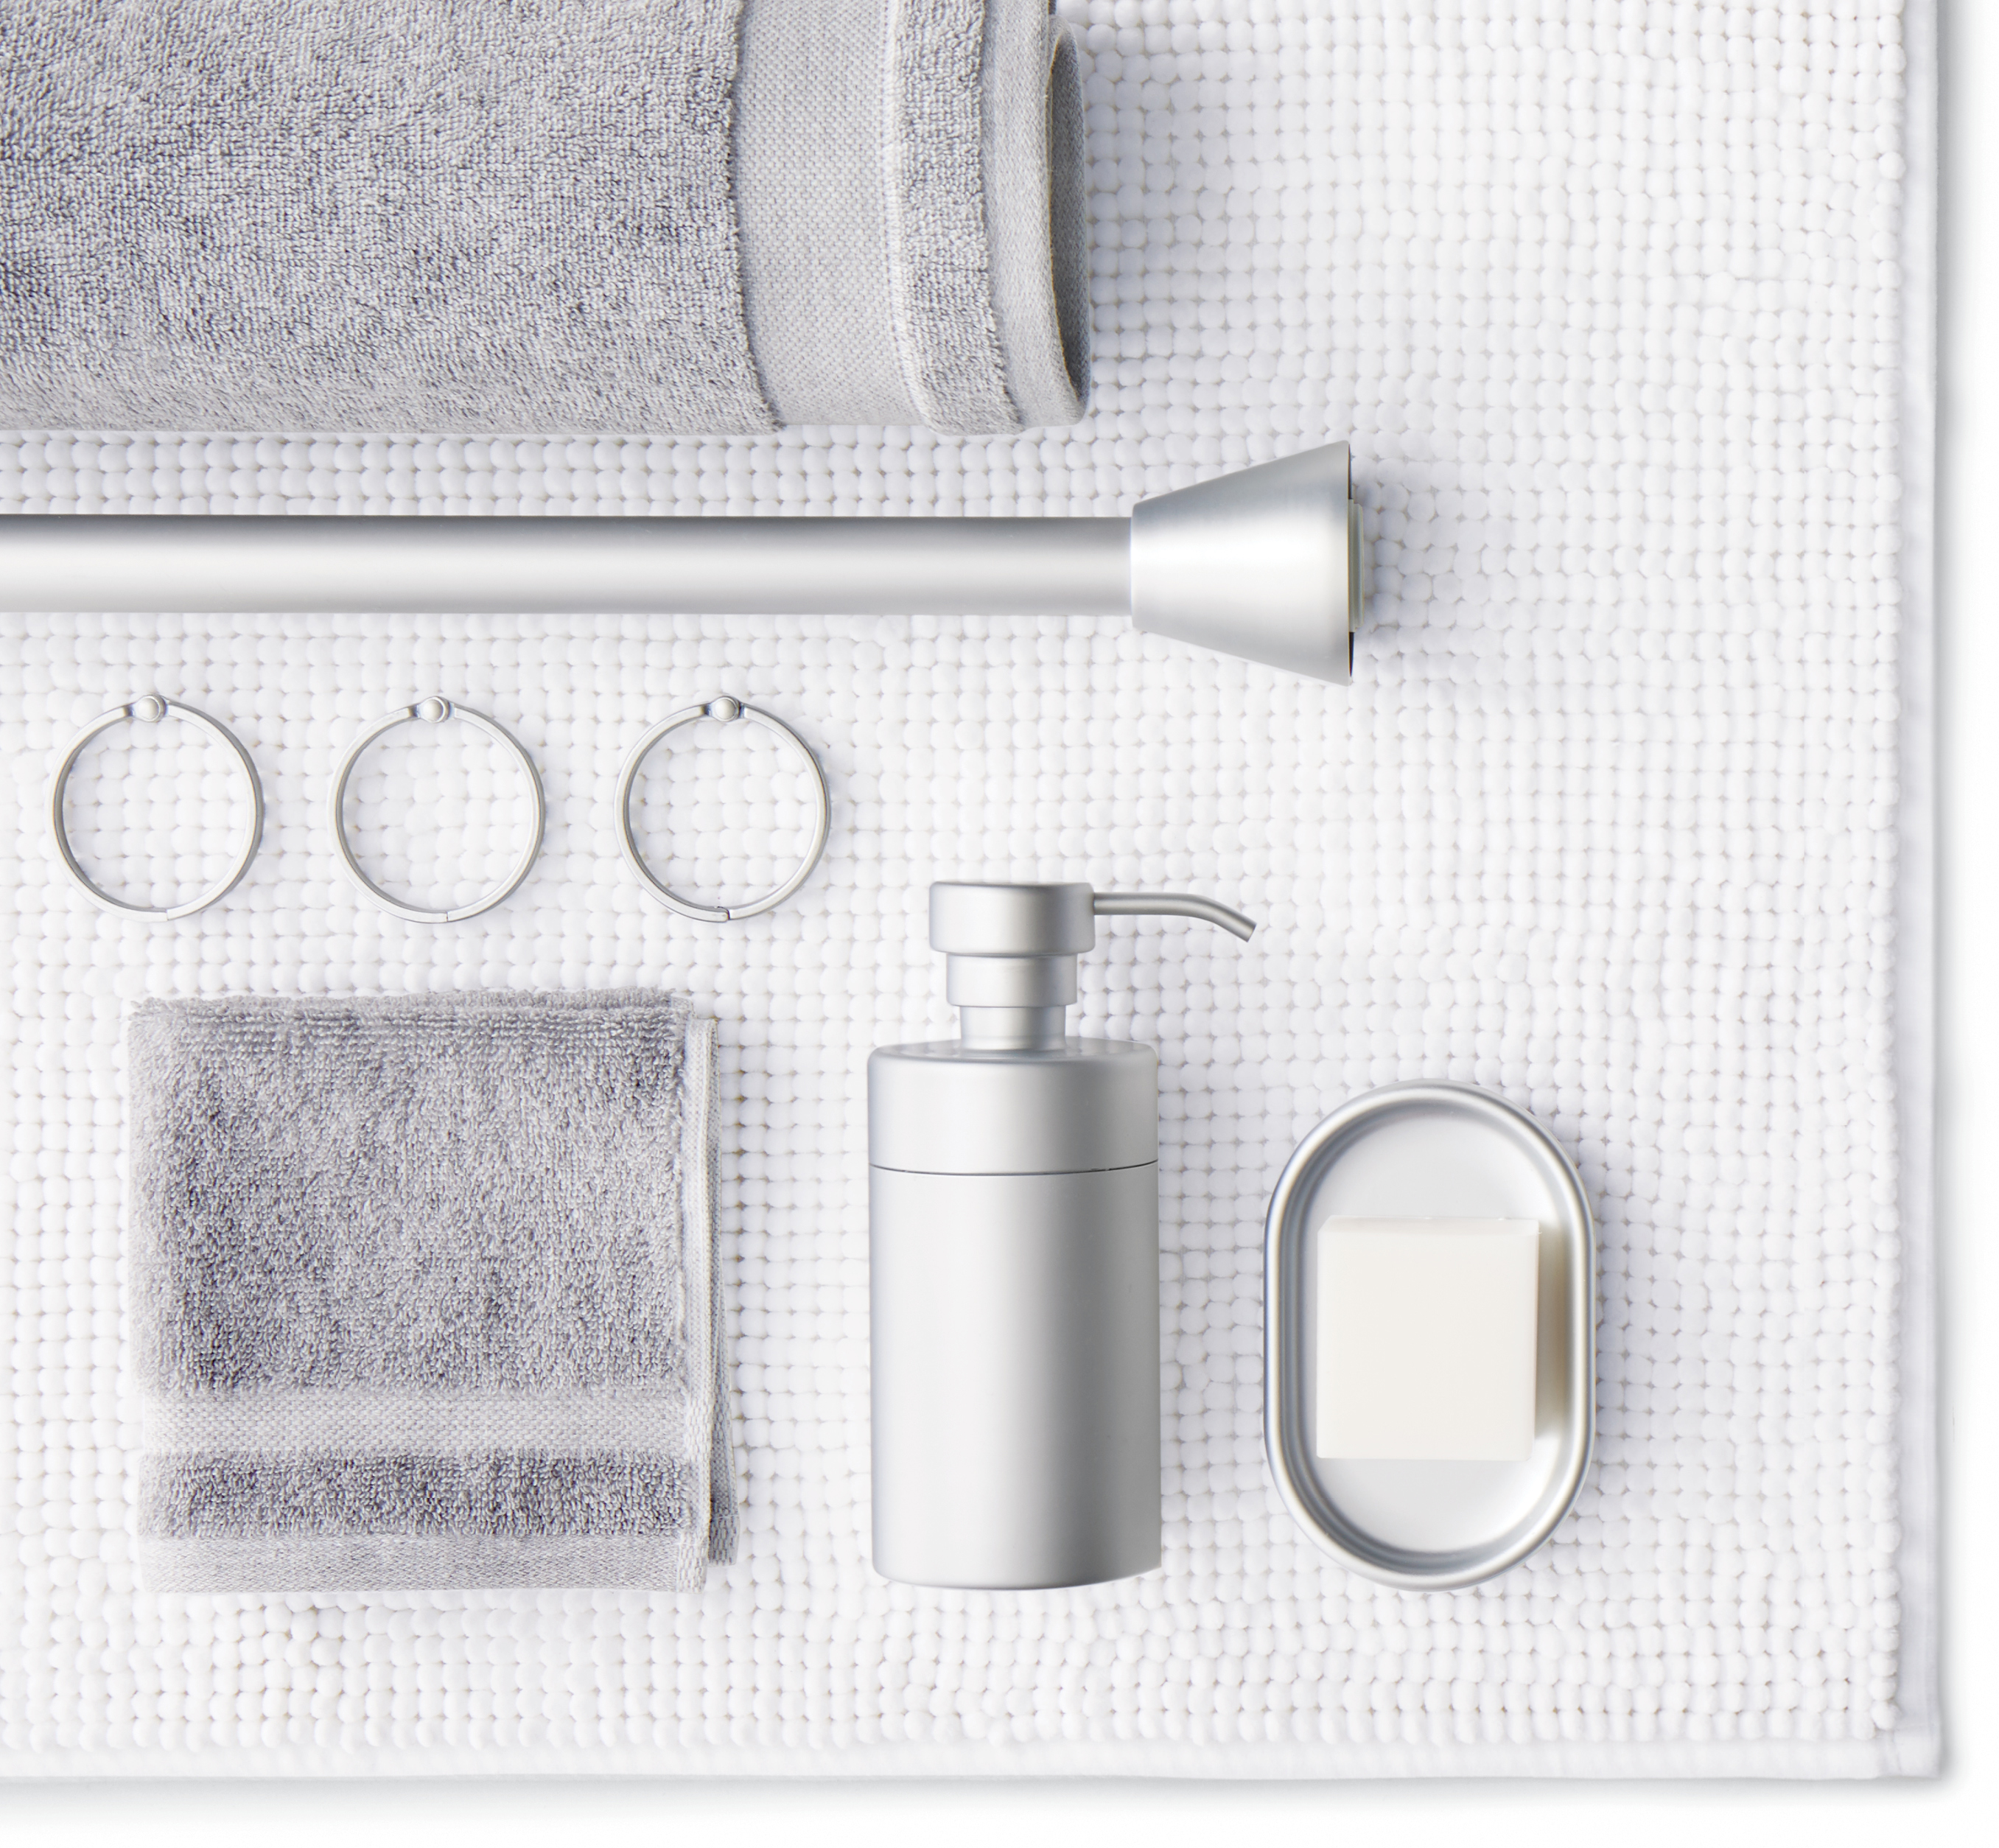 Collage including grey bath and hand towels, shower rod and rings, soap pump and dish